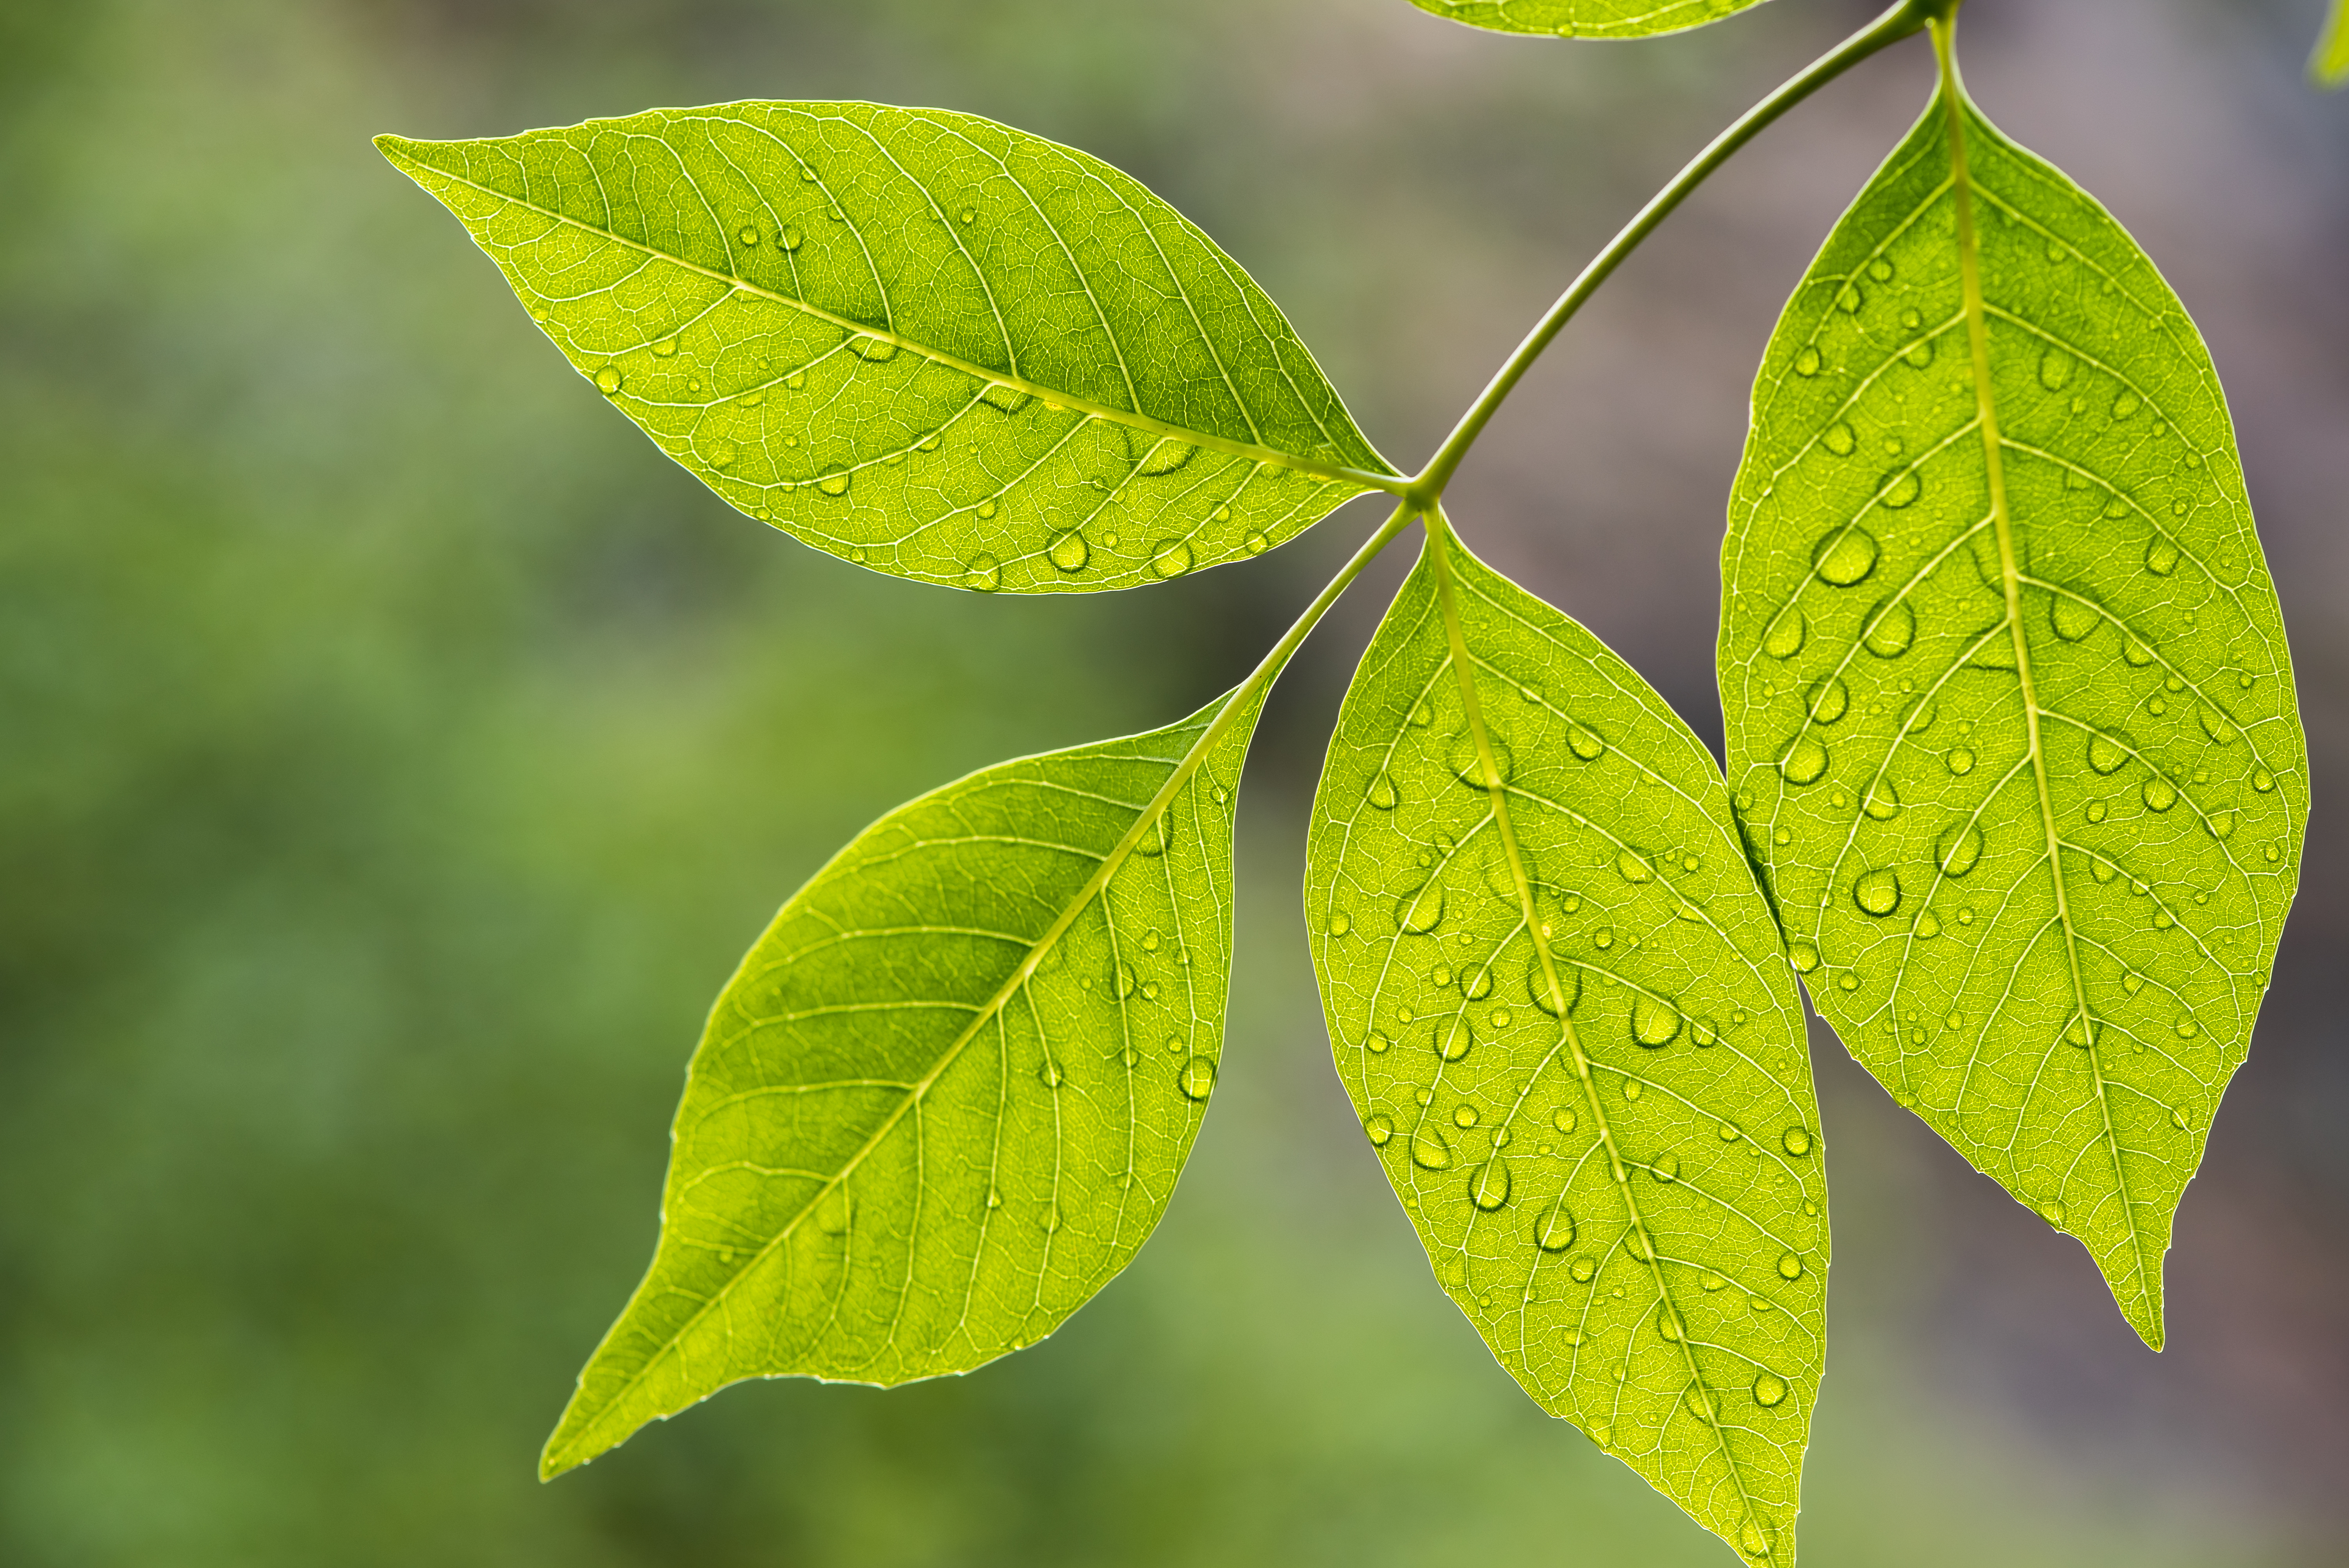 Rain Drops On Leaves - 0365